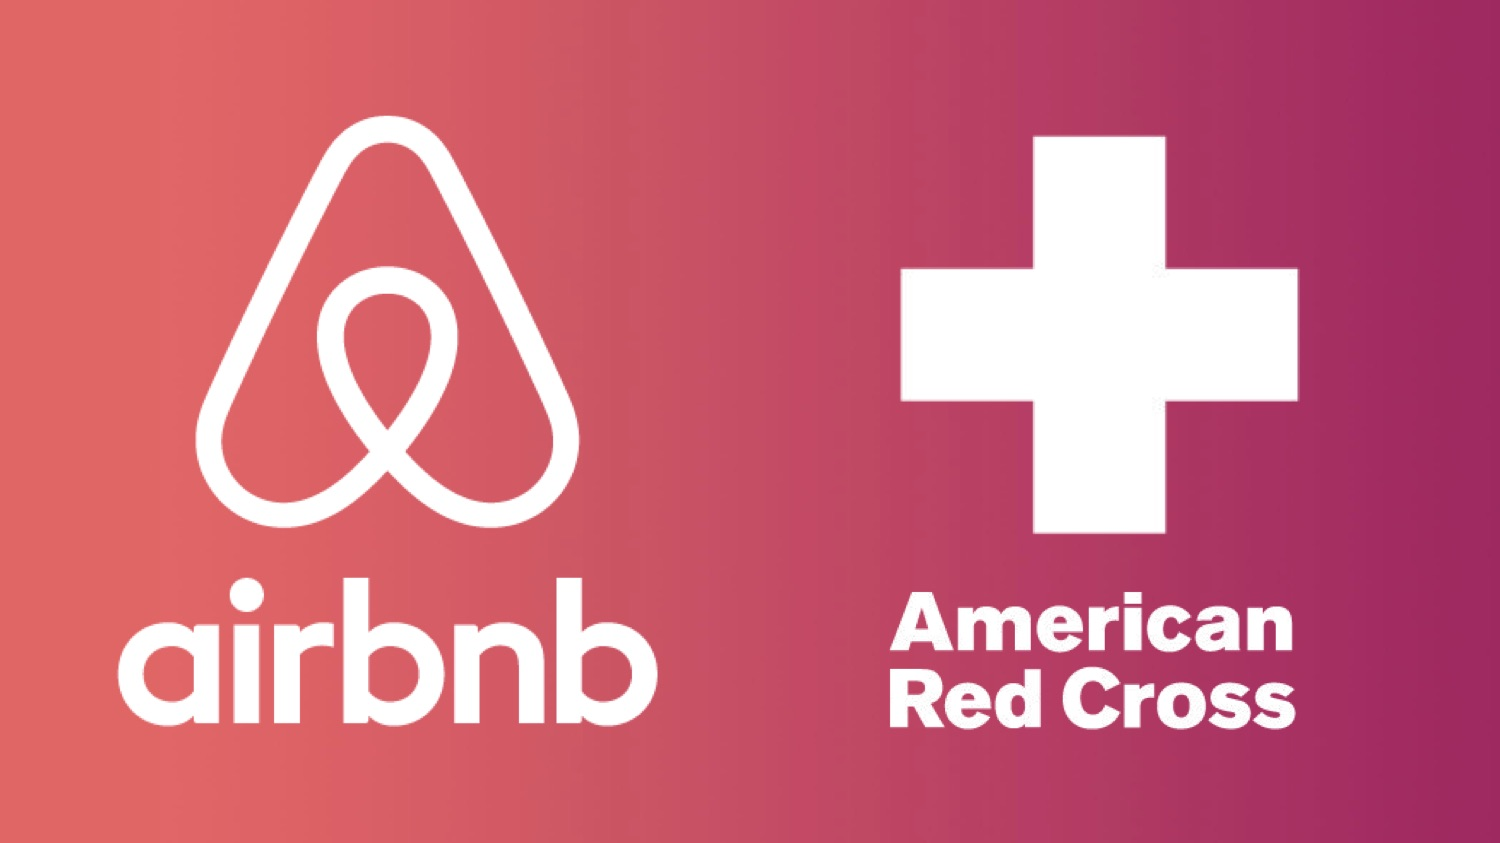 Airbnb + Red Cross Cover.jpg